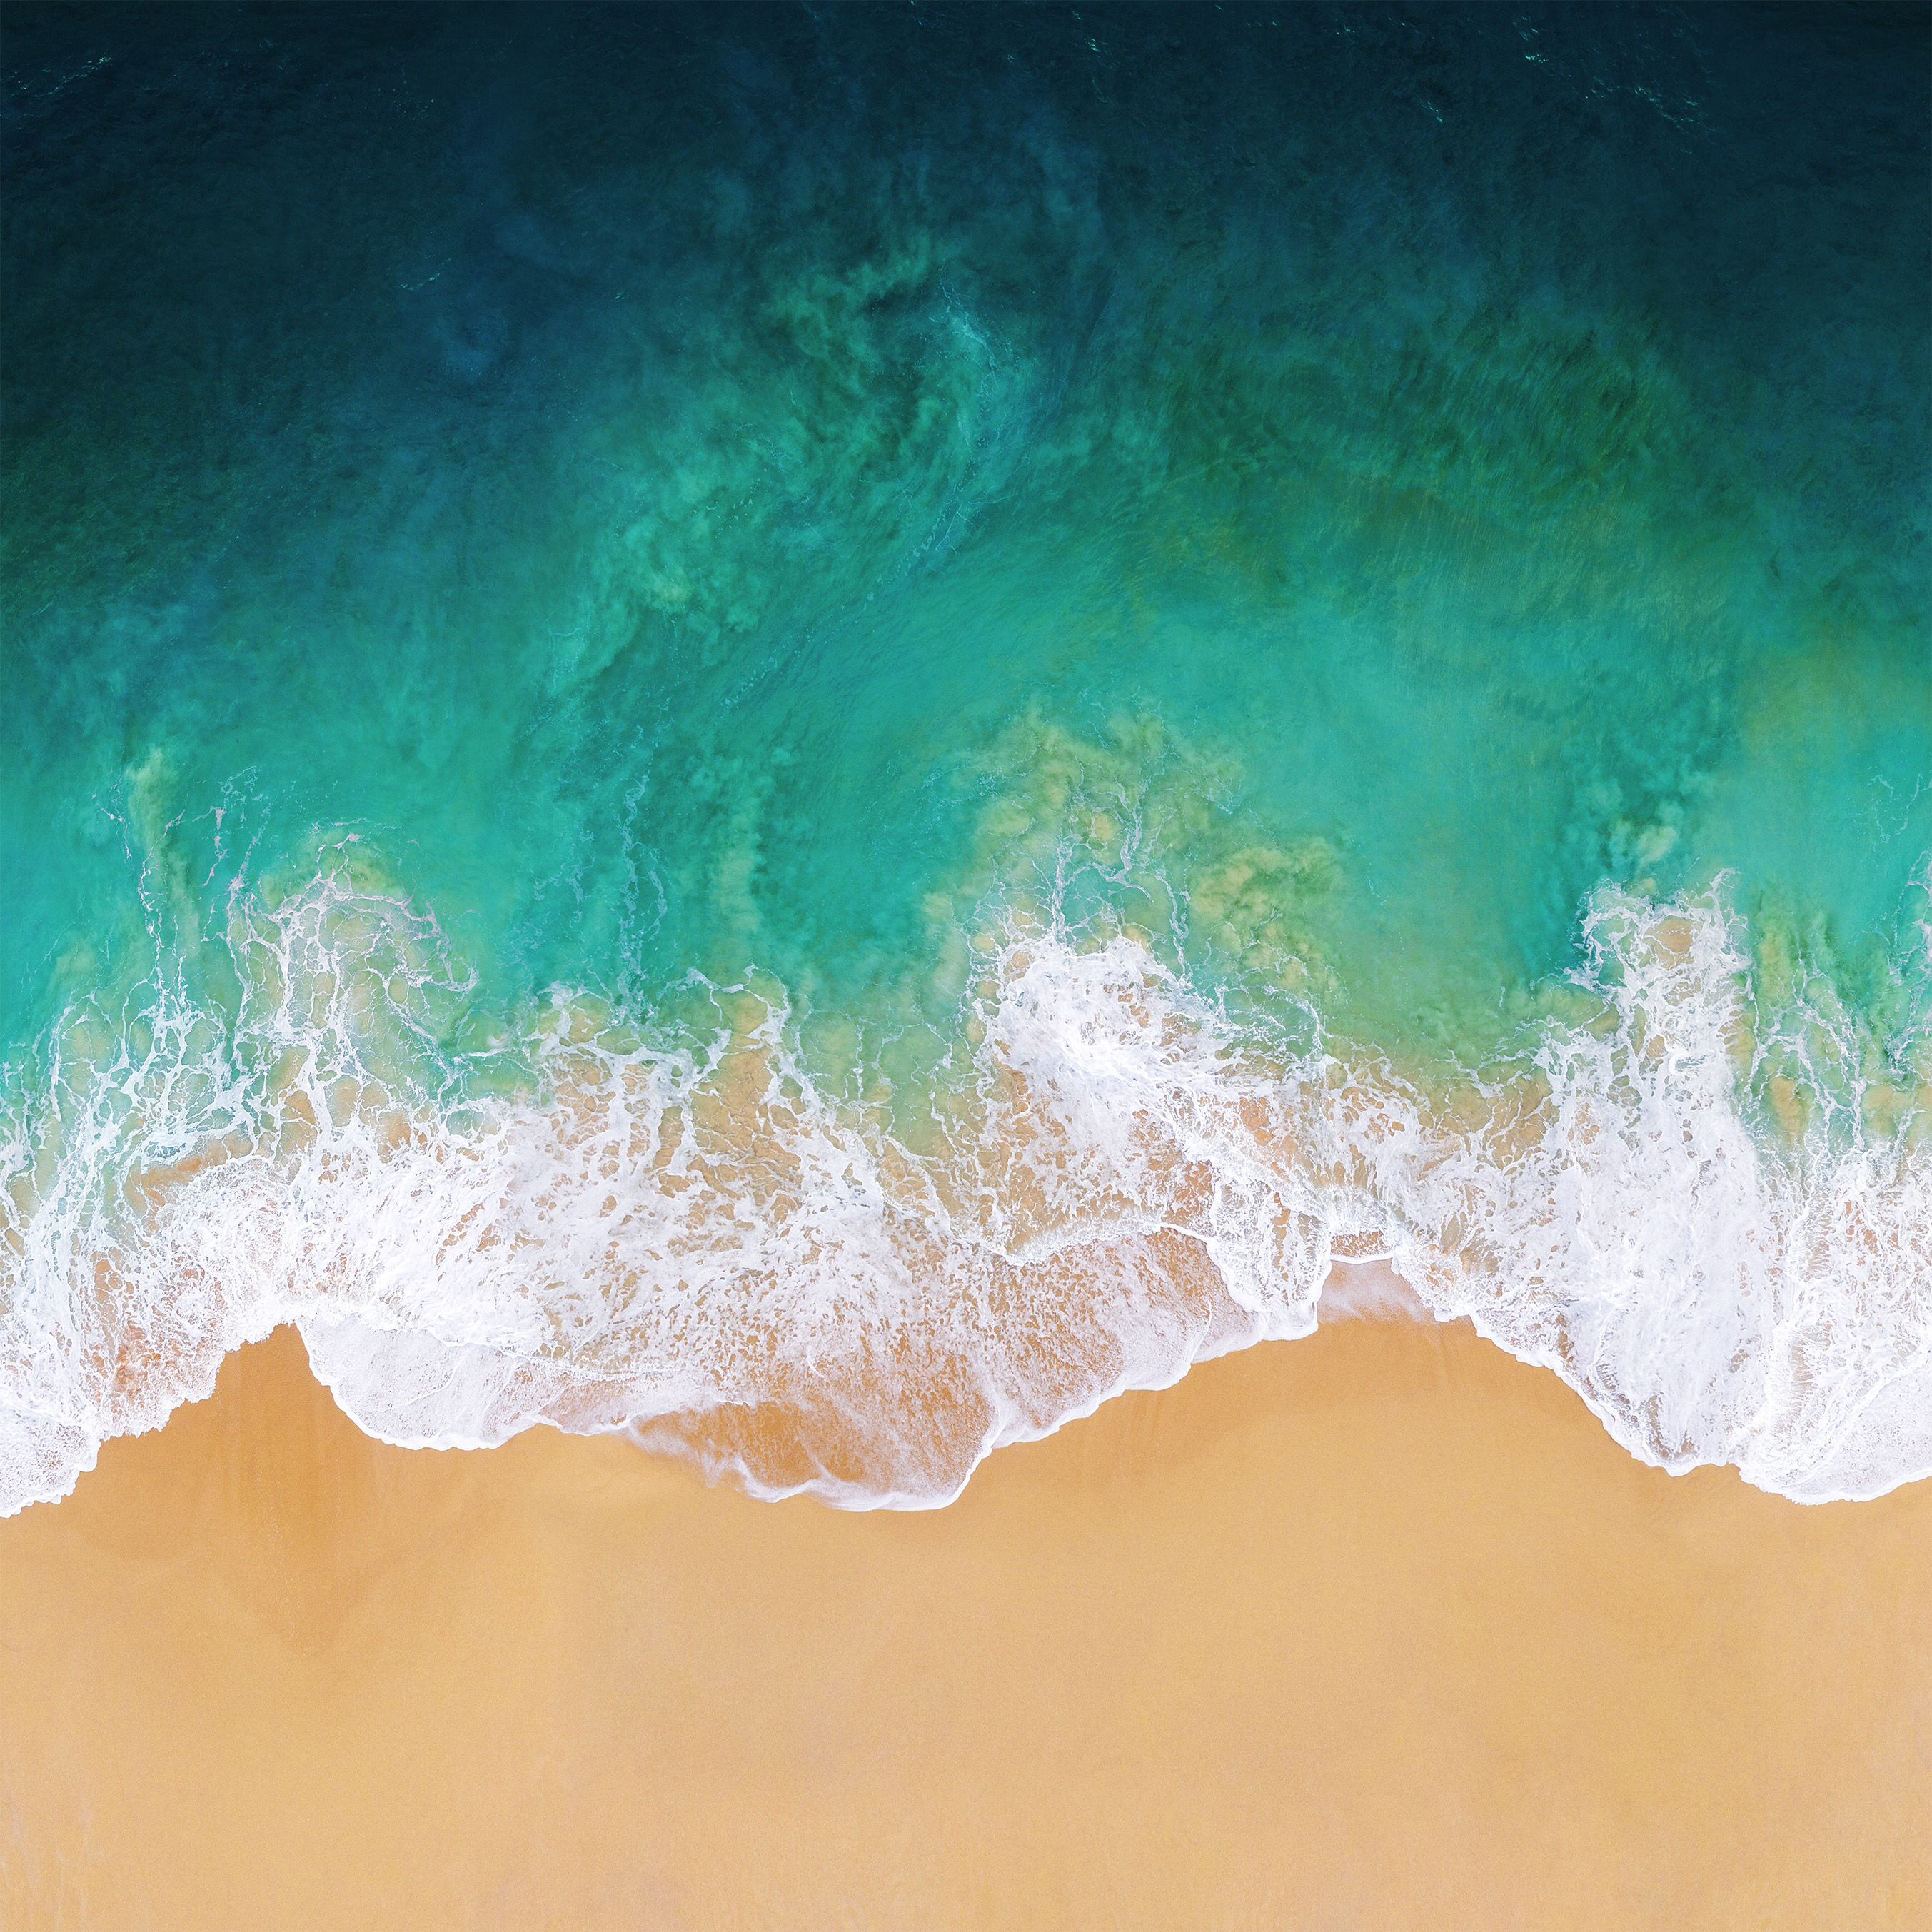 Download the Real iOS 11 Wallpaper for iPhone   iClarified 2706x2706